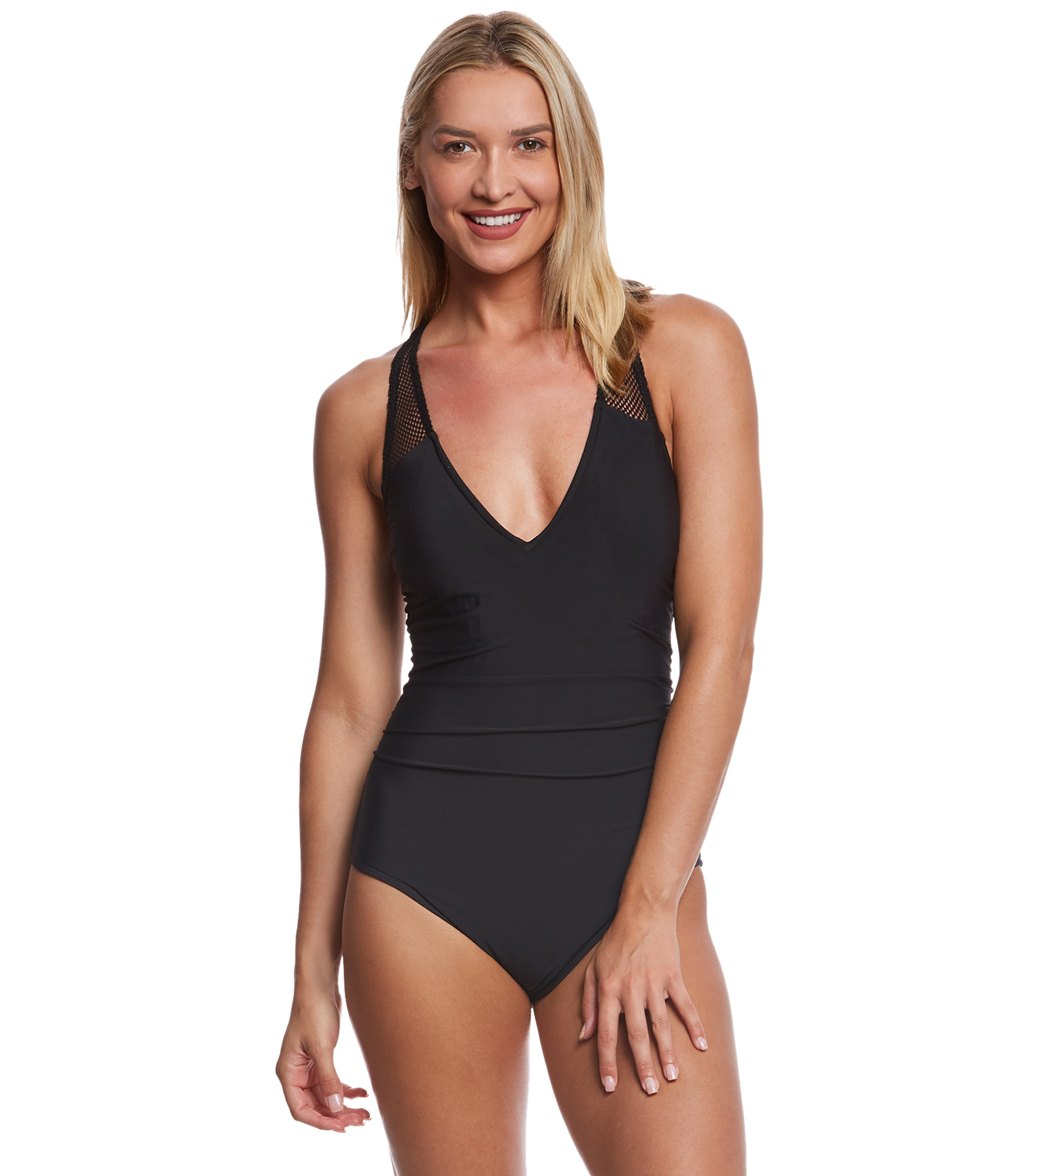 66916c8084 Magicsuit by Miraclesuit Solid Trinity One Piece Swimsuit at SwimOutlet.com  - Free Shipping